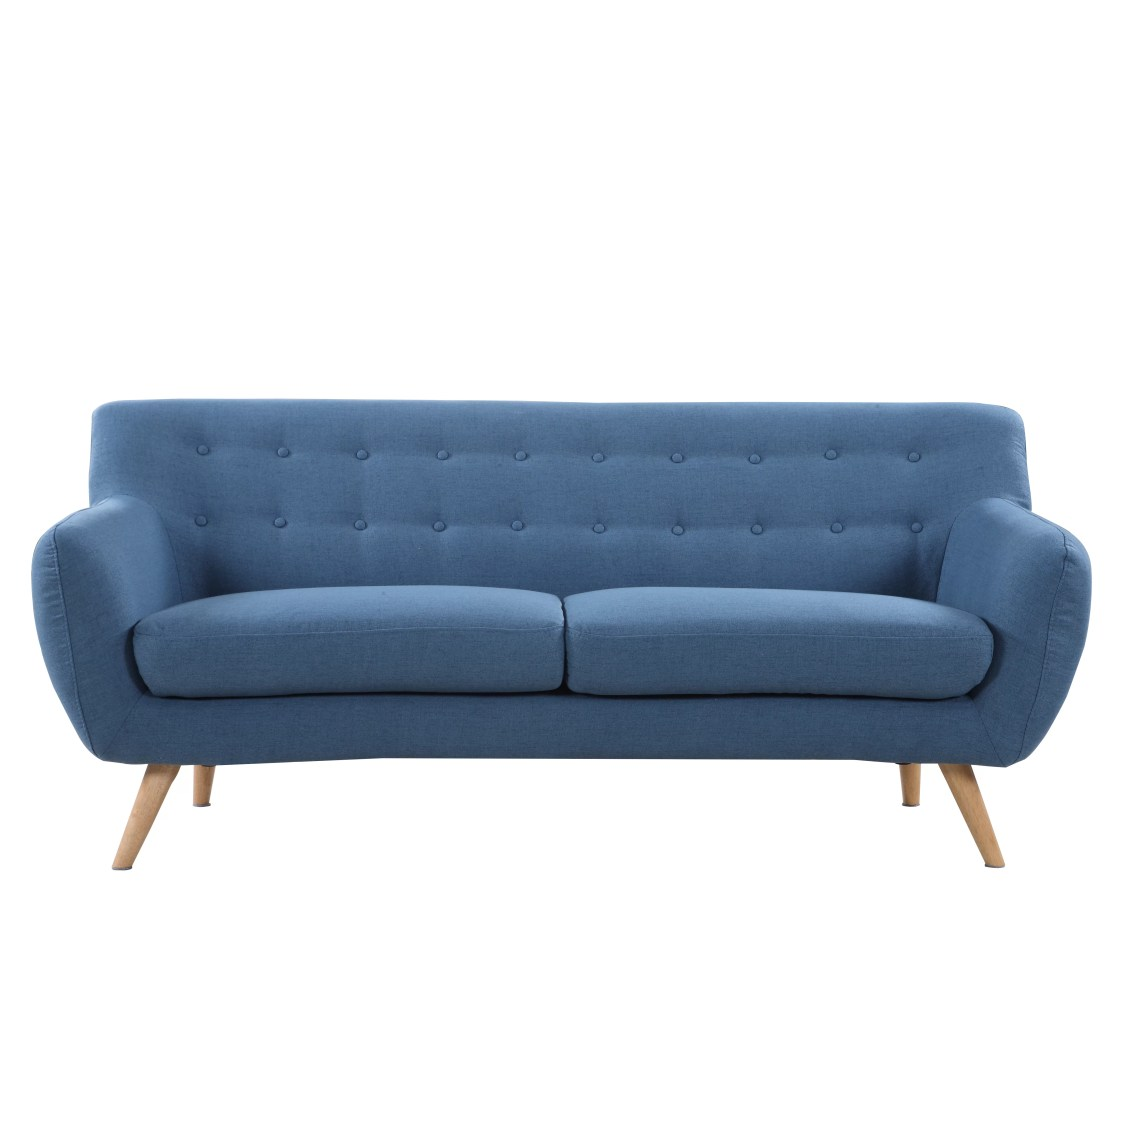 Image Result For Shipping Furniture To Usa